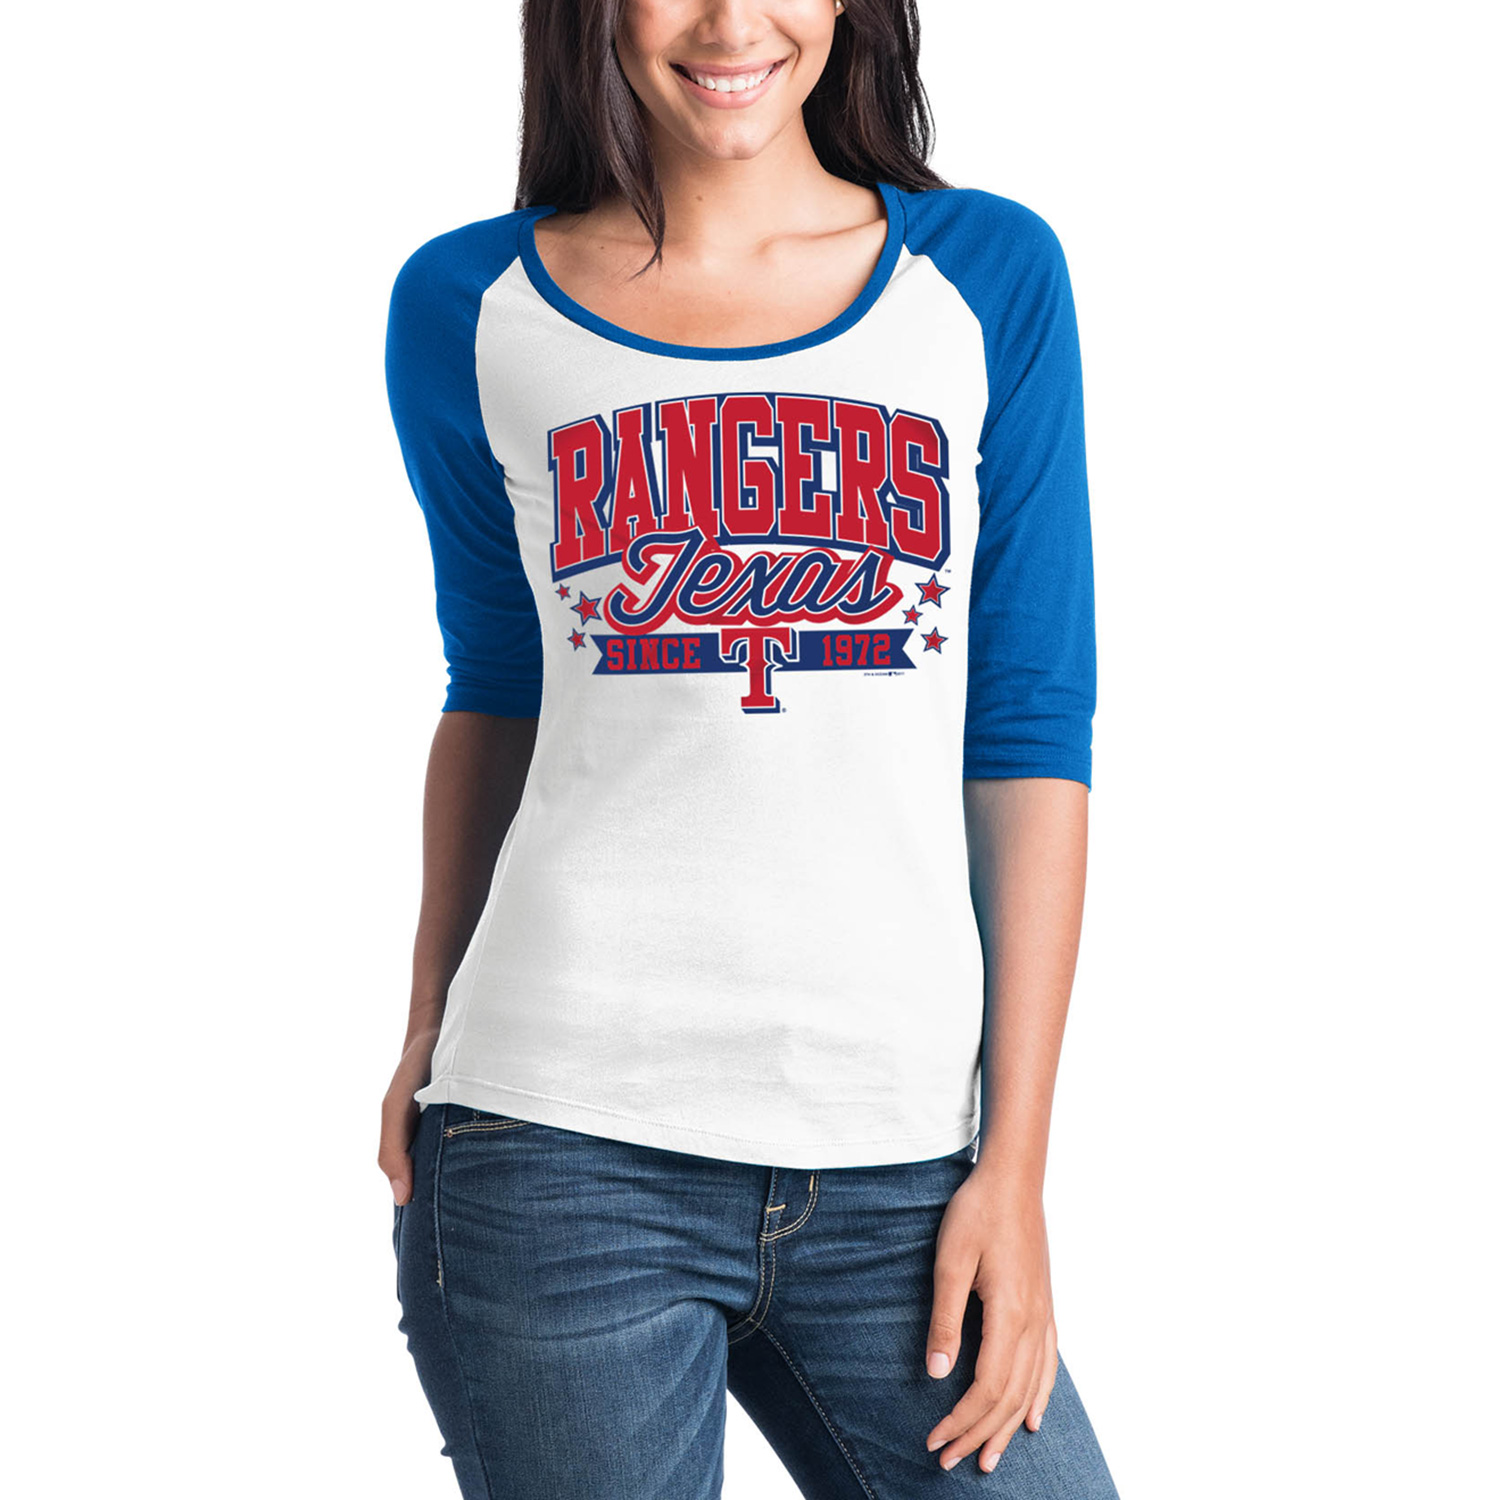 Texas Rangers 5th & Ocean by New Era Women's Team Banner 3/4-Sleeve Raglan T-Shirt - White/Royal